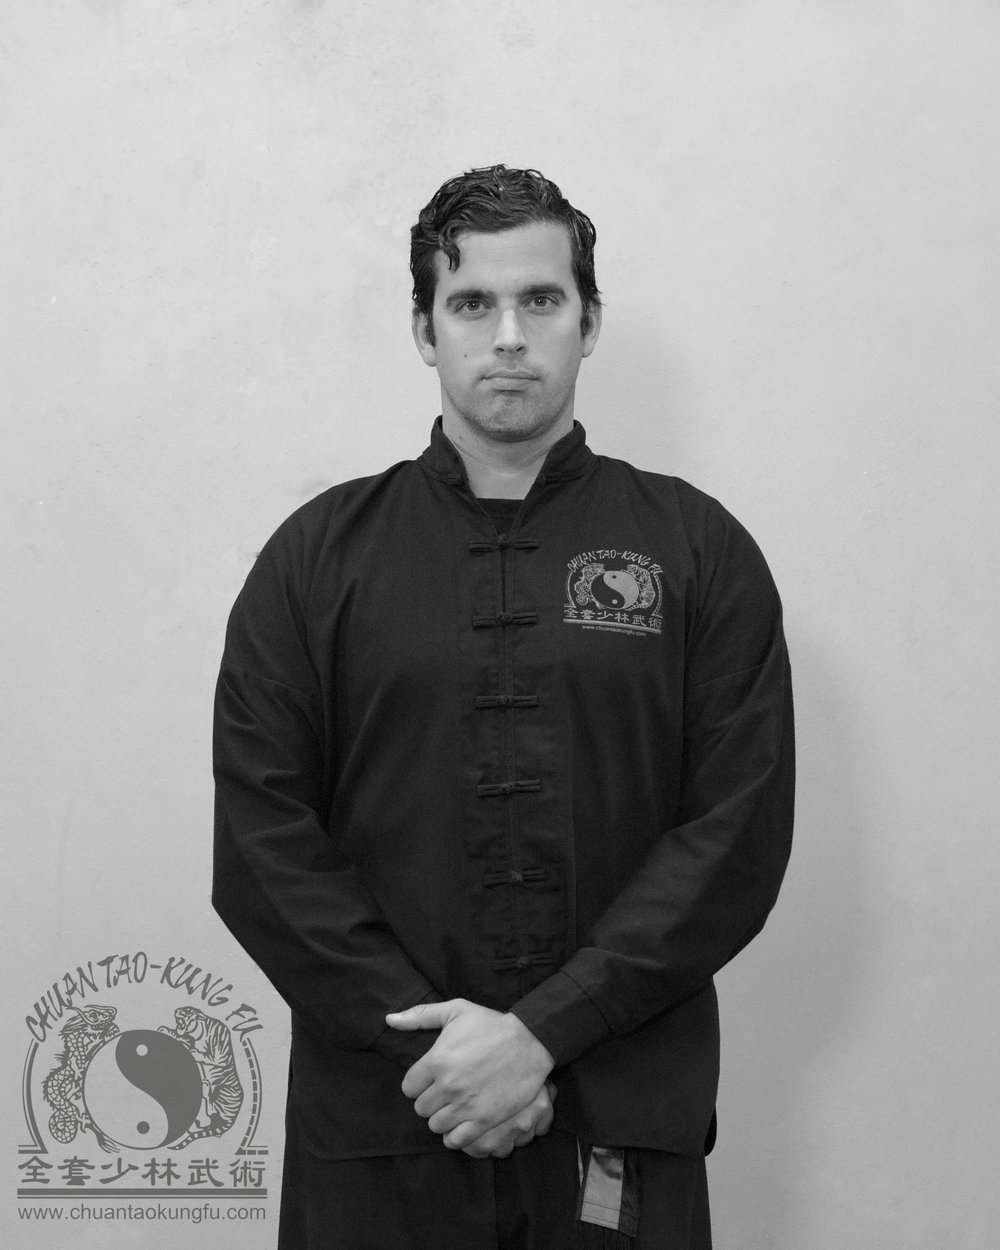 - Mr. Graydon has studied martial arts since the age of 13. He started out training in Karate at the local community center, later moving on to Tae Kwon Do.After realizing those styles weren't for him, he went searching for a school that could supply him with self-defense skills that were practical and effective and would lead to a higher knowledge of what the ancient arts are all about. He finally found Chuan Tao Kung-Fu in 1993.After becoming consumed by the training, he took over as chief instructor from 1997-99. Since then, Mr. Graydon has kept up his training with other alumni of the school and is now one of Chuan Tao Kung Fu's senior instructors.